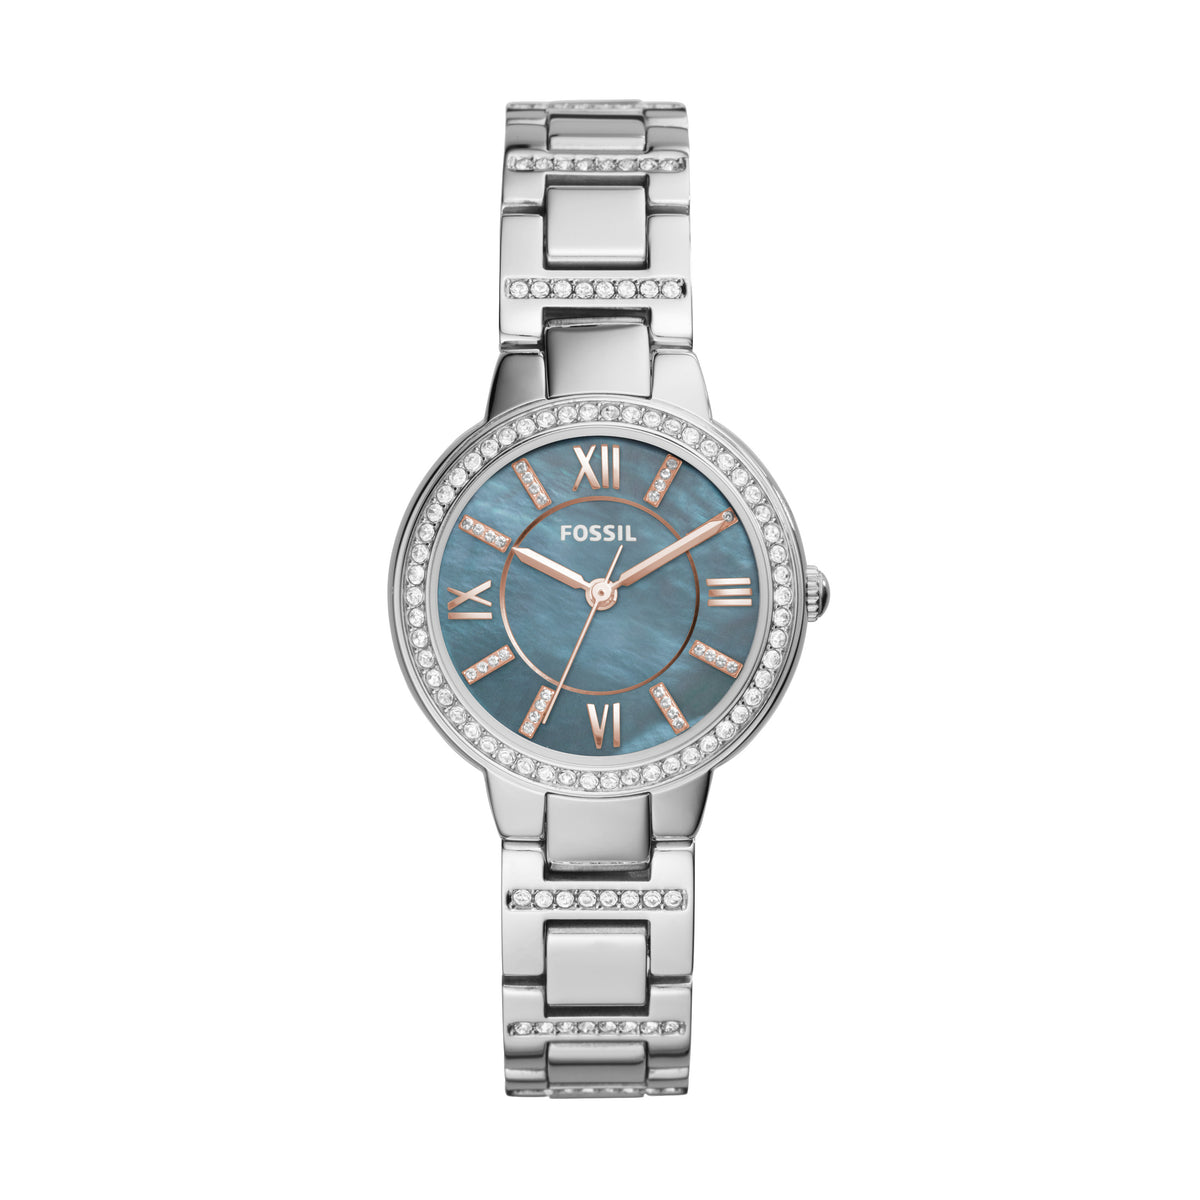 Fossil Watch - Virginia Three-Hand stainless steel watch